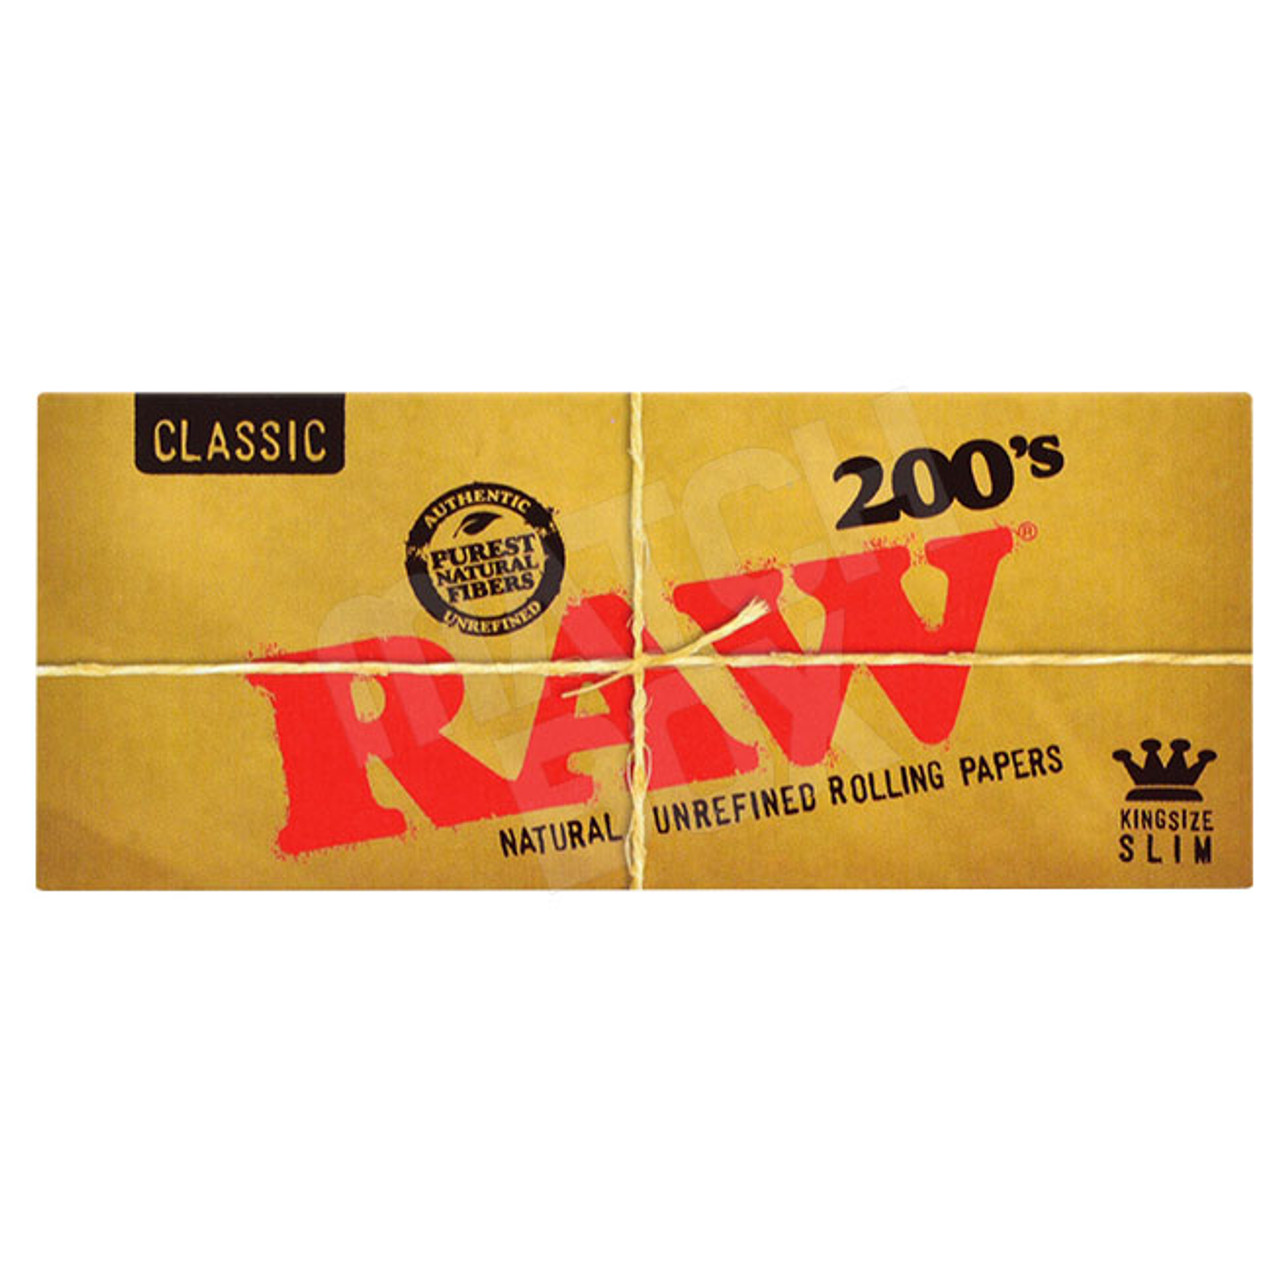 RAW King Size Slim 200's Single Pack